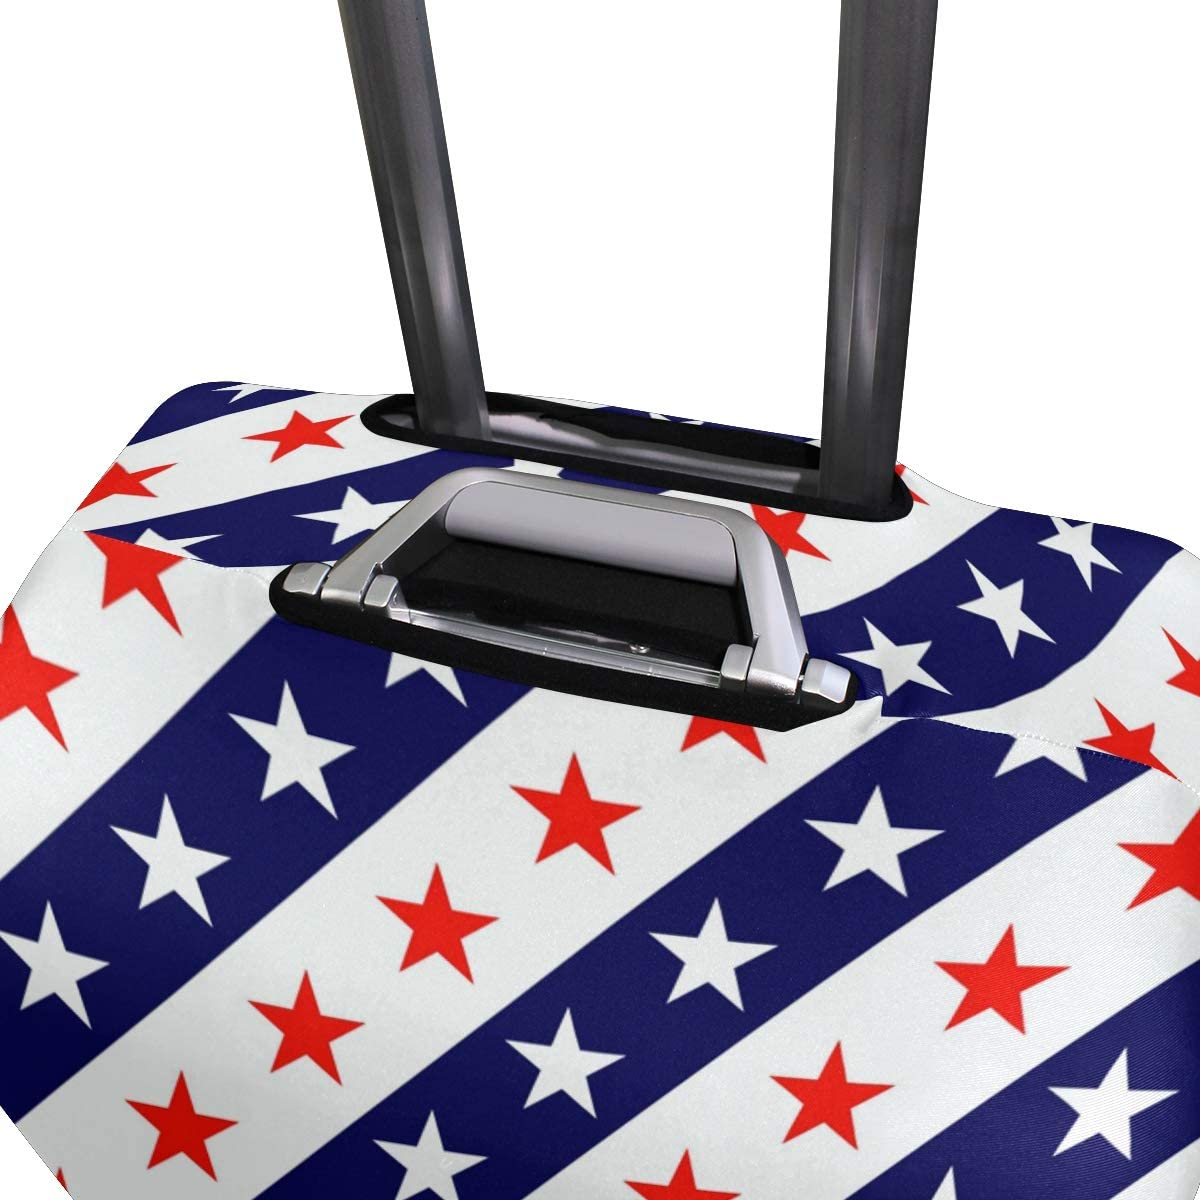 Travel Luggage Cover Red White Stars Blue USA Flag Color Suitcase Protector